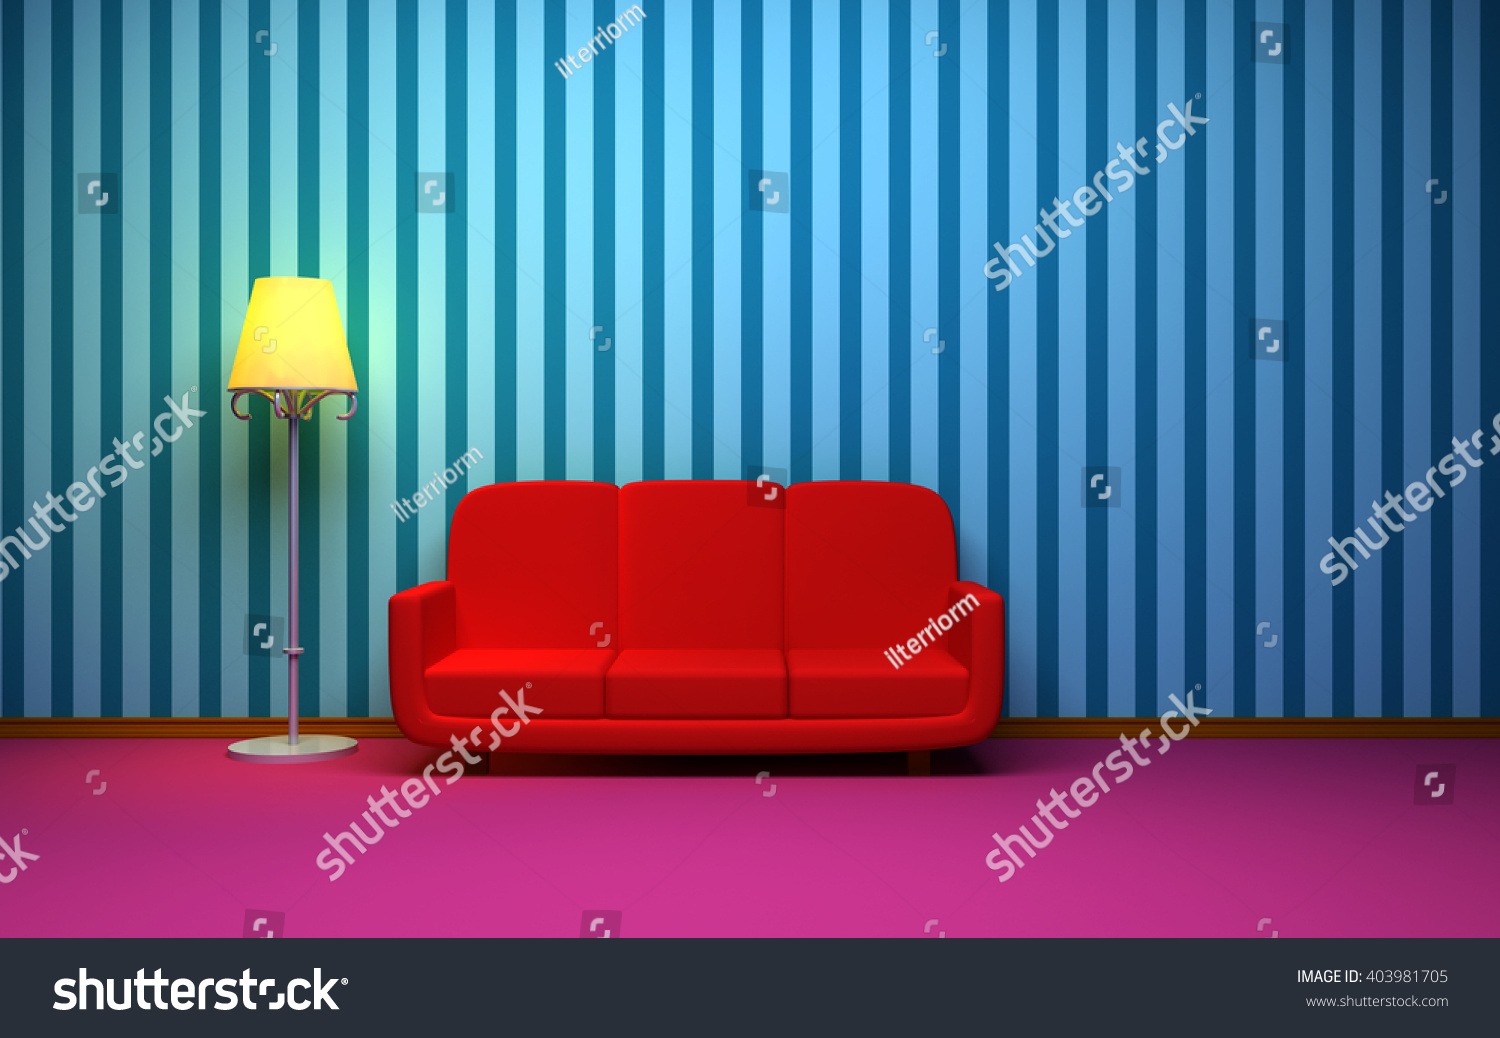 A Room In A Retro Style With A Red Sofa And Blue Striped Wallpaper. Side